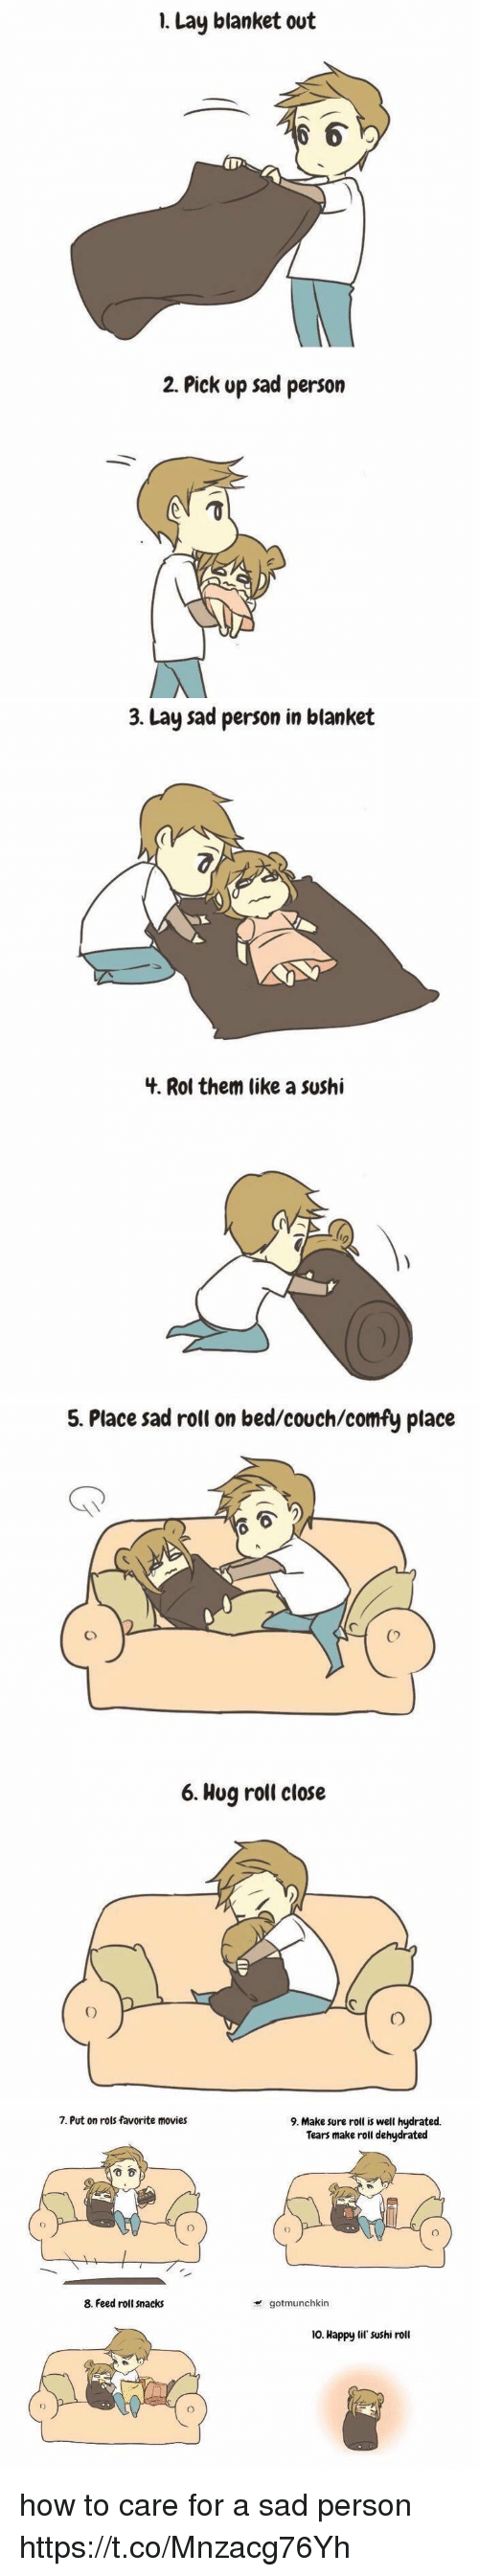 Movies, Couch, and Happy: 1. Lay blanket out  2. Pick up sad person   3. Lay sad person in blanket  3.  4. Rol them like a sushi   5. Place sad roll on bed/couch/comfy place  Co  6. Hug roll close   7. Put on rols favorite movies  9. Make sure roll is well hydrated.  Tears make roll dehydrated  8. Feed roll snacks  gotmunchkin  o. Happy lif' sushi roll how to care for a sad person https://t.co/Mnzacg76Yh